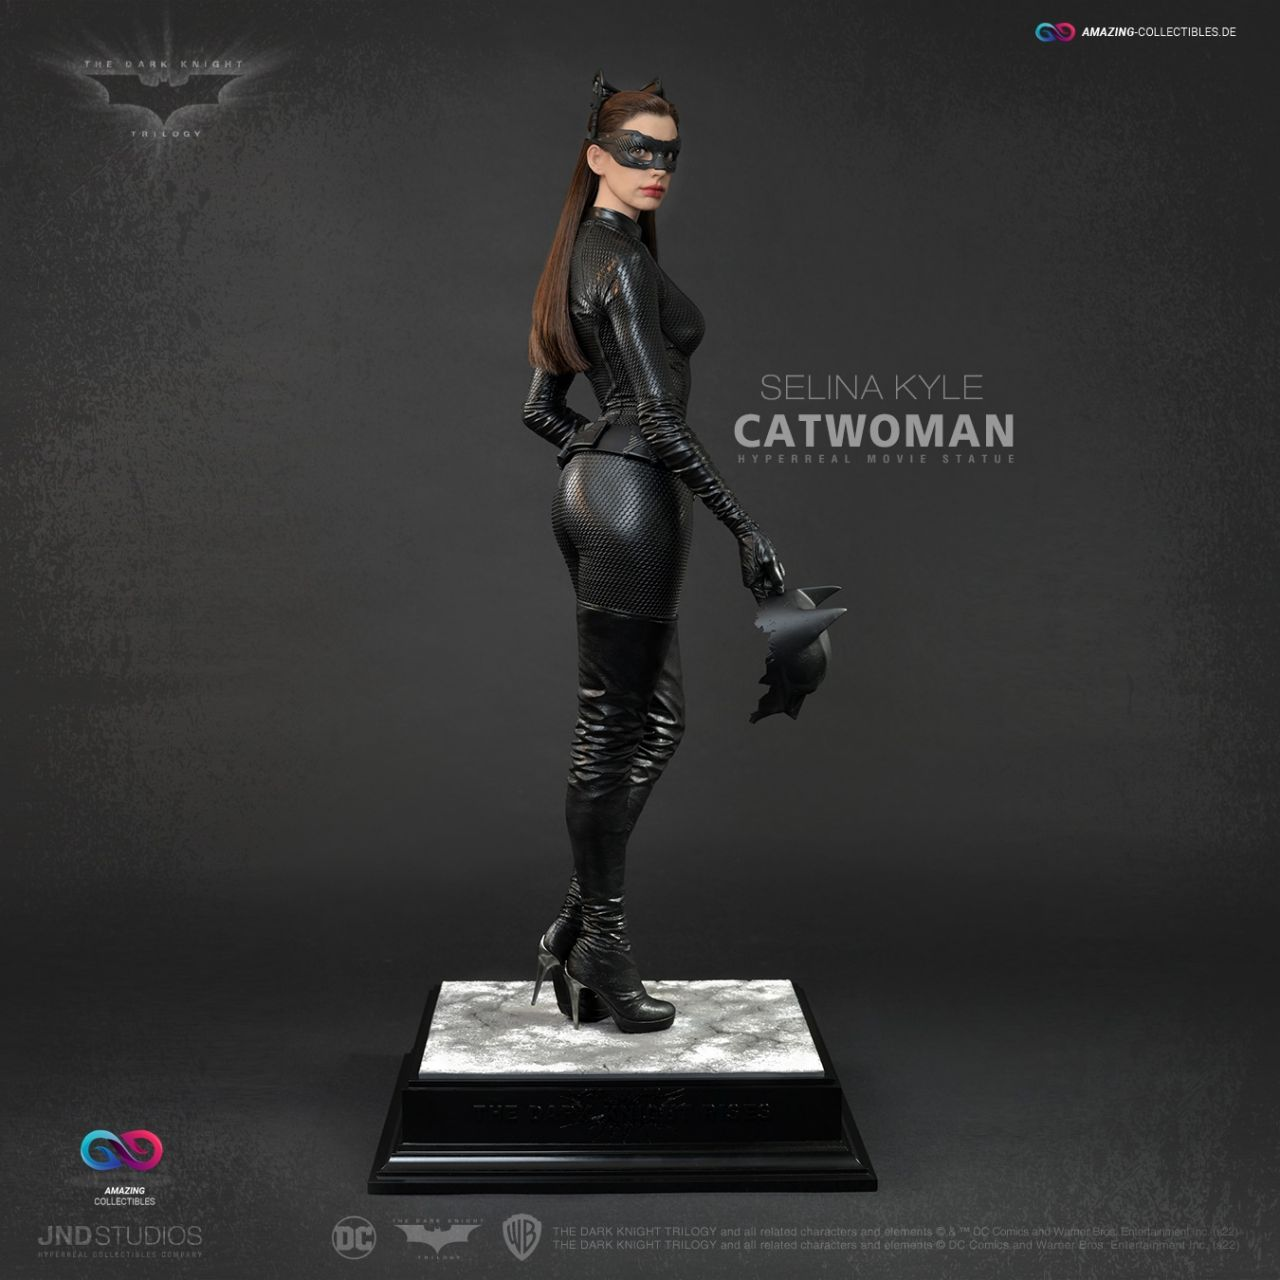 JND Studios - Selina Kyle (Anne Hathaway) - Catwoman - The dark knight rises